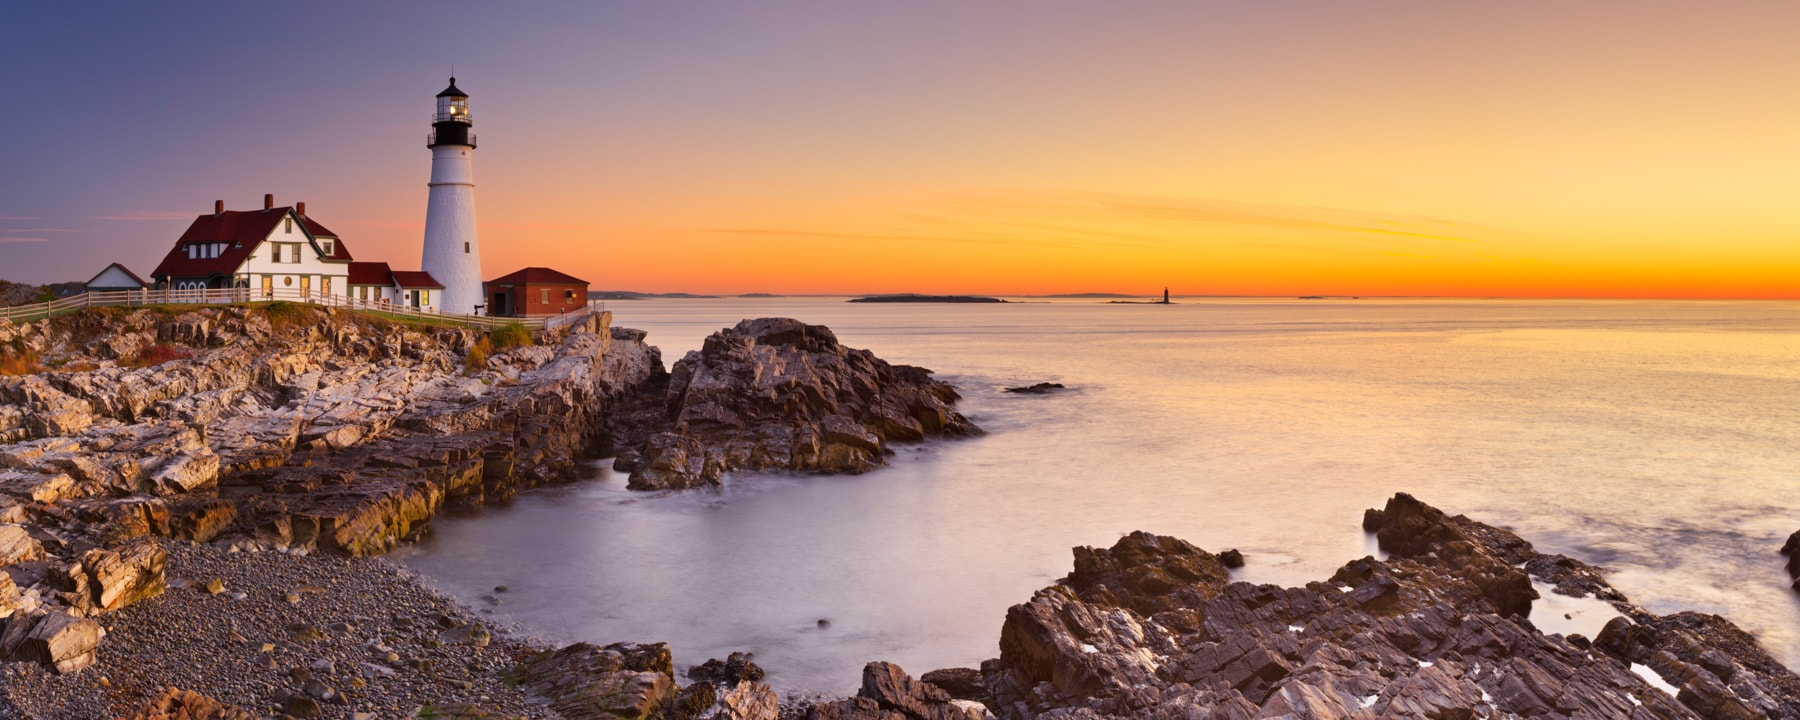 PORTLAND, MAINE - Partenza Travel creates luxury travel packages to New England